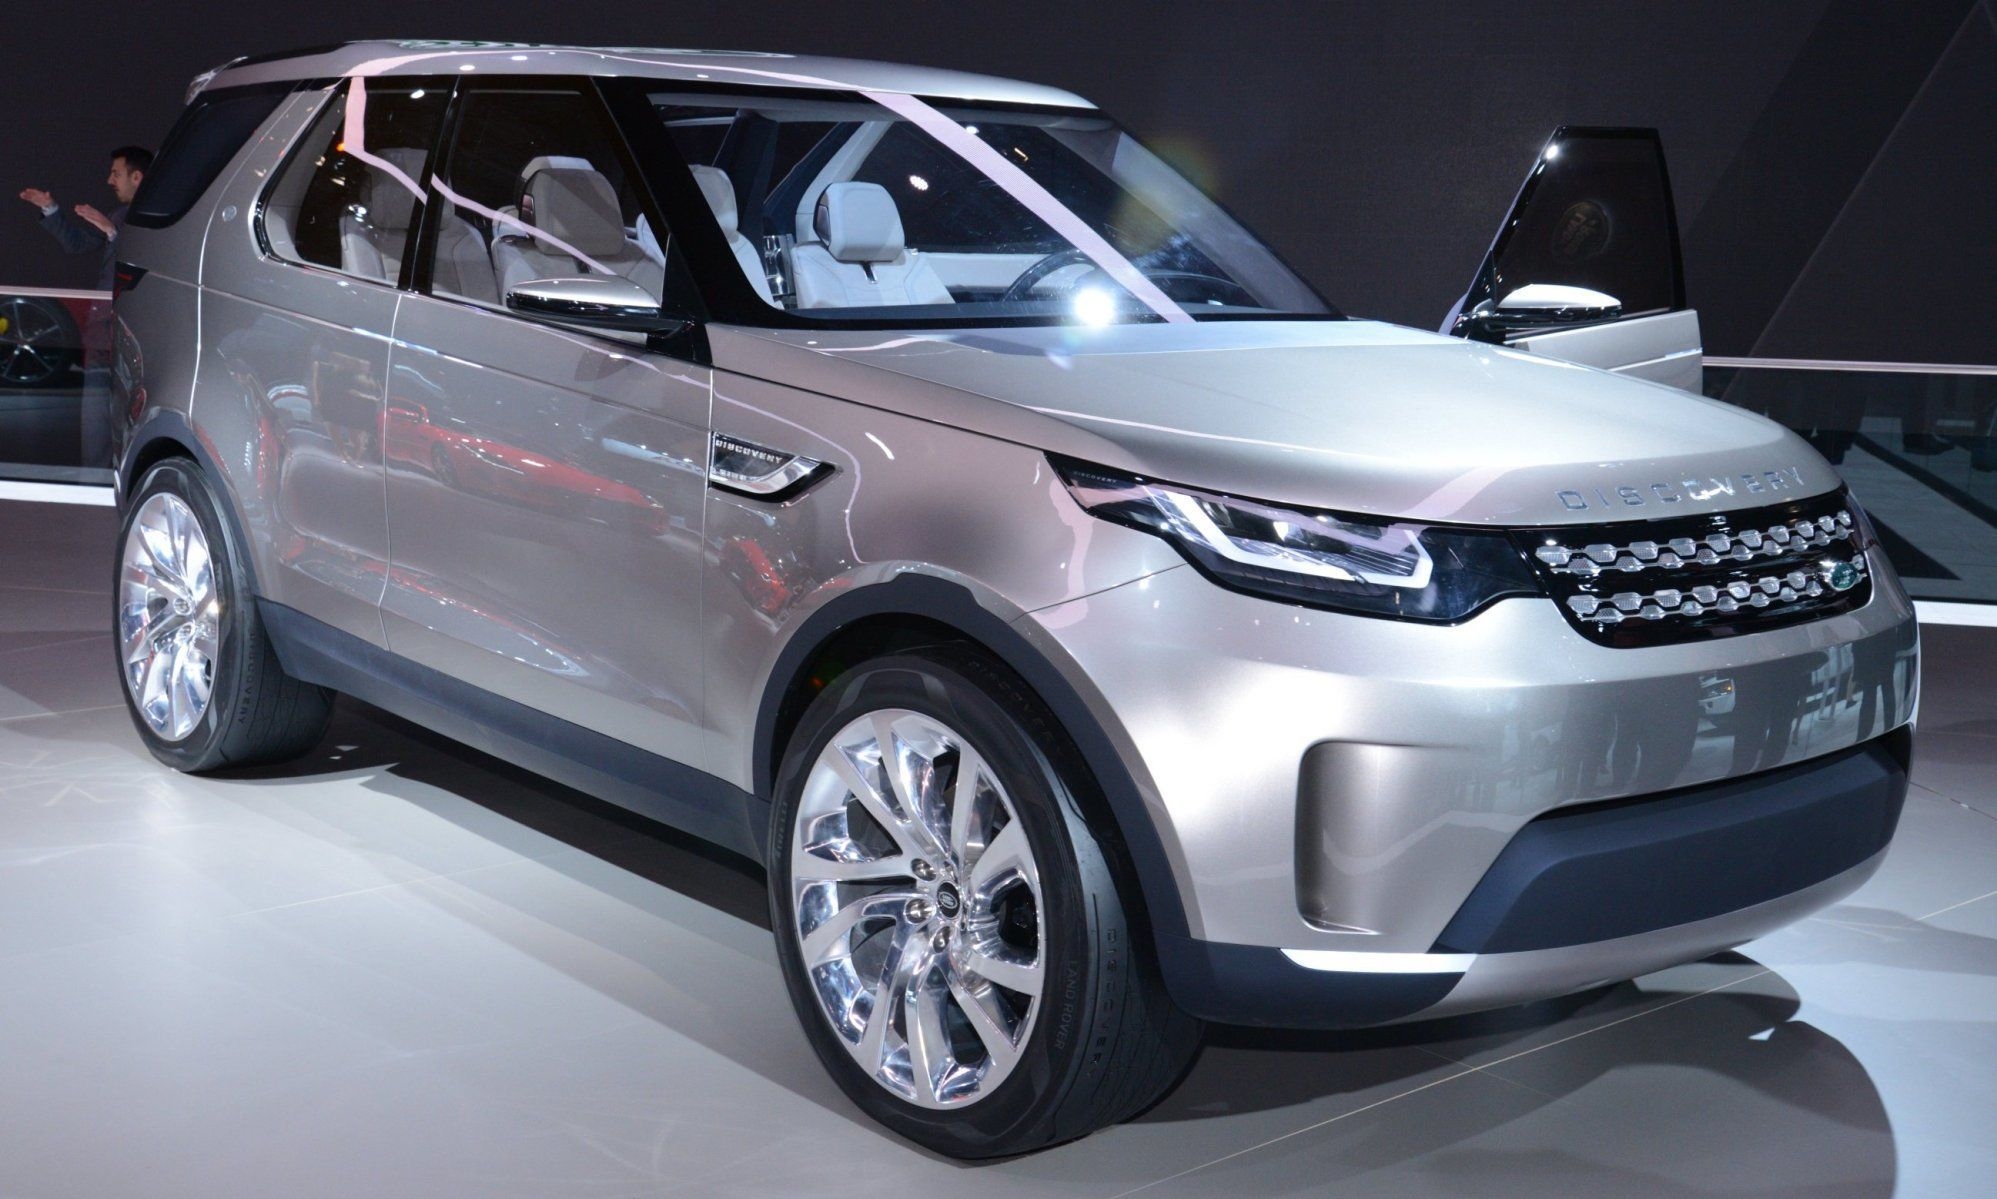 Discovery Concept Previews 2016 LR4 Discovery and 2015 LR2 Disco Sport